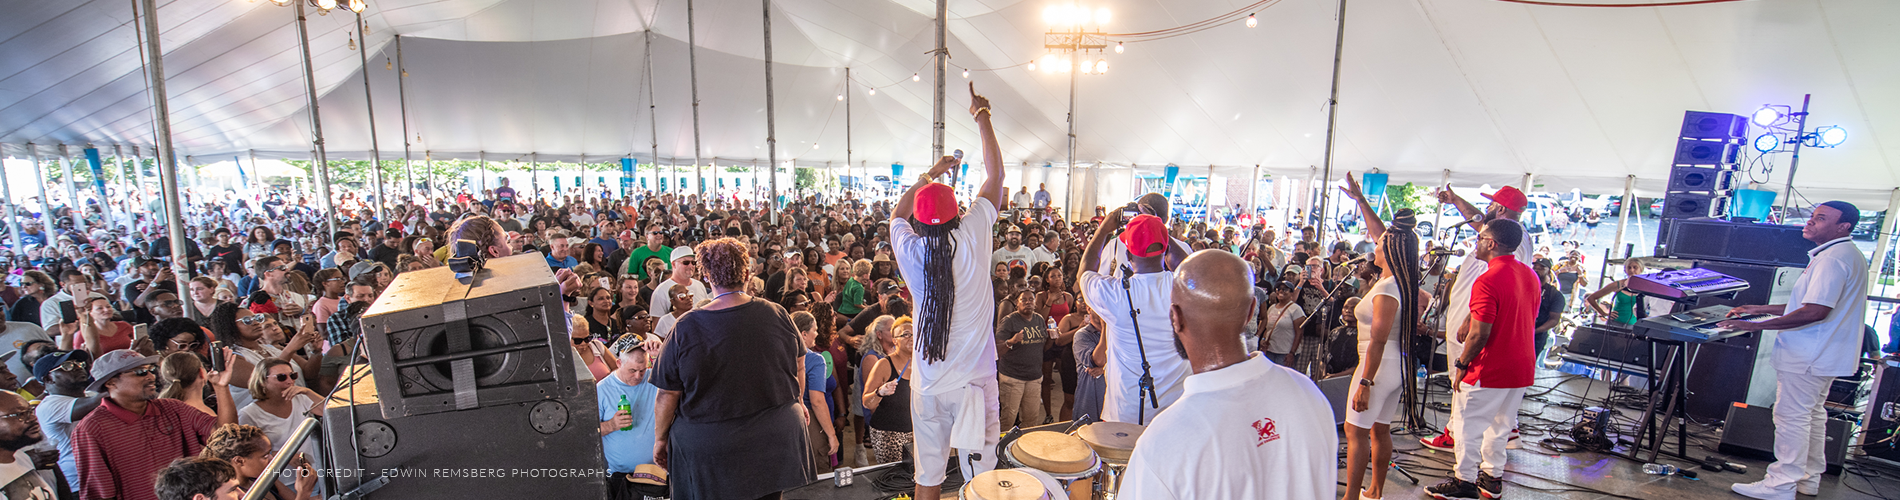 A photo of a band in front of a crowd at the National Folk Festival